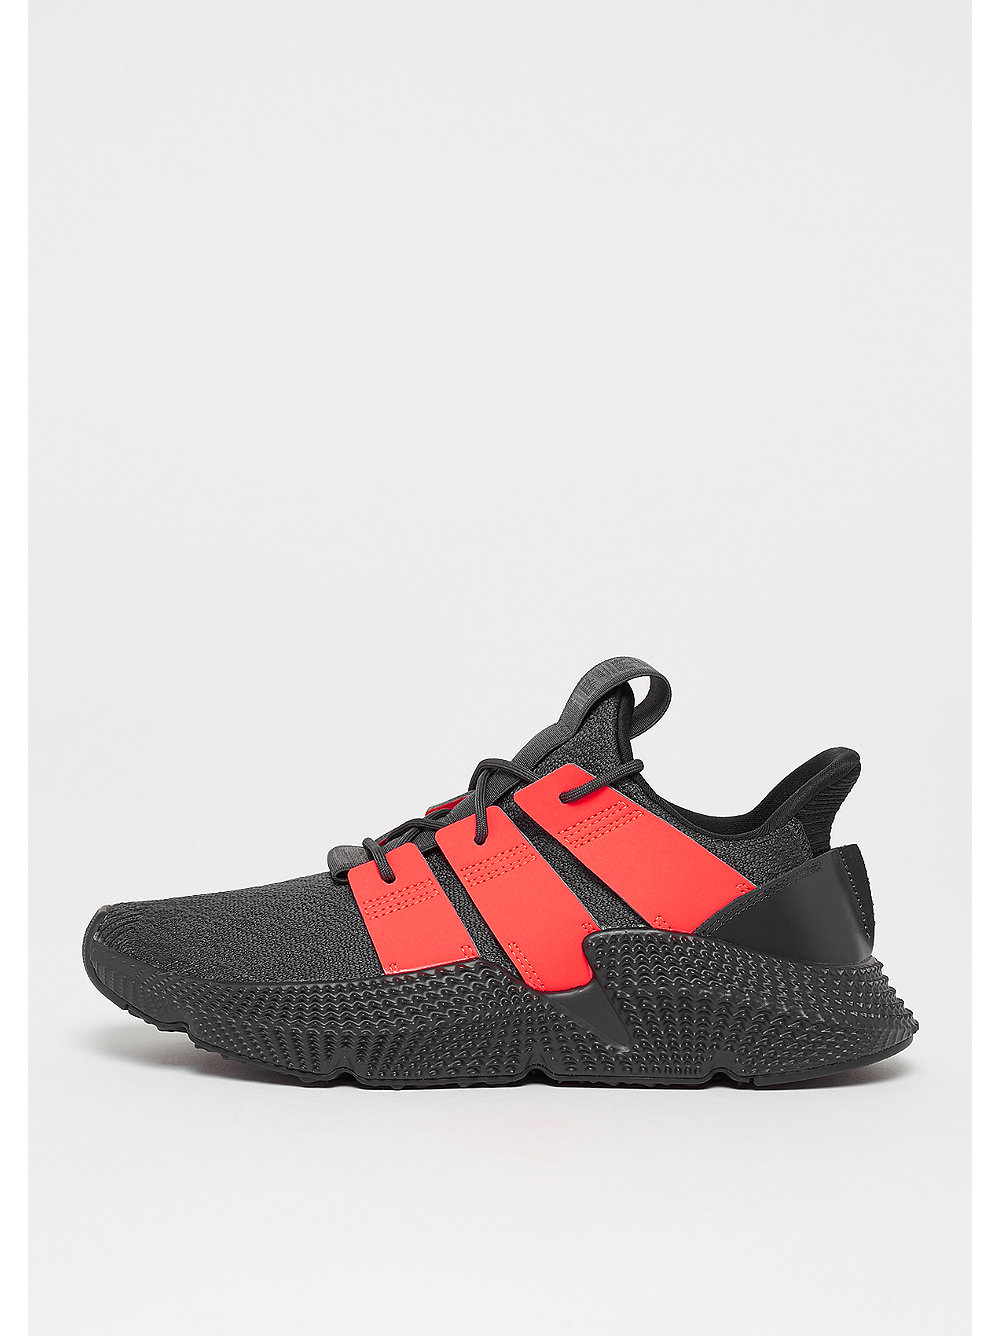 Commander adidas Prophere core carbon solar Rouge carbon chez SNIPES